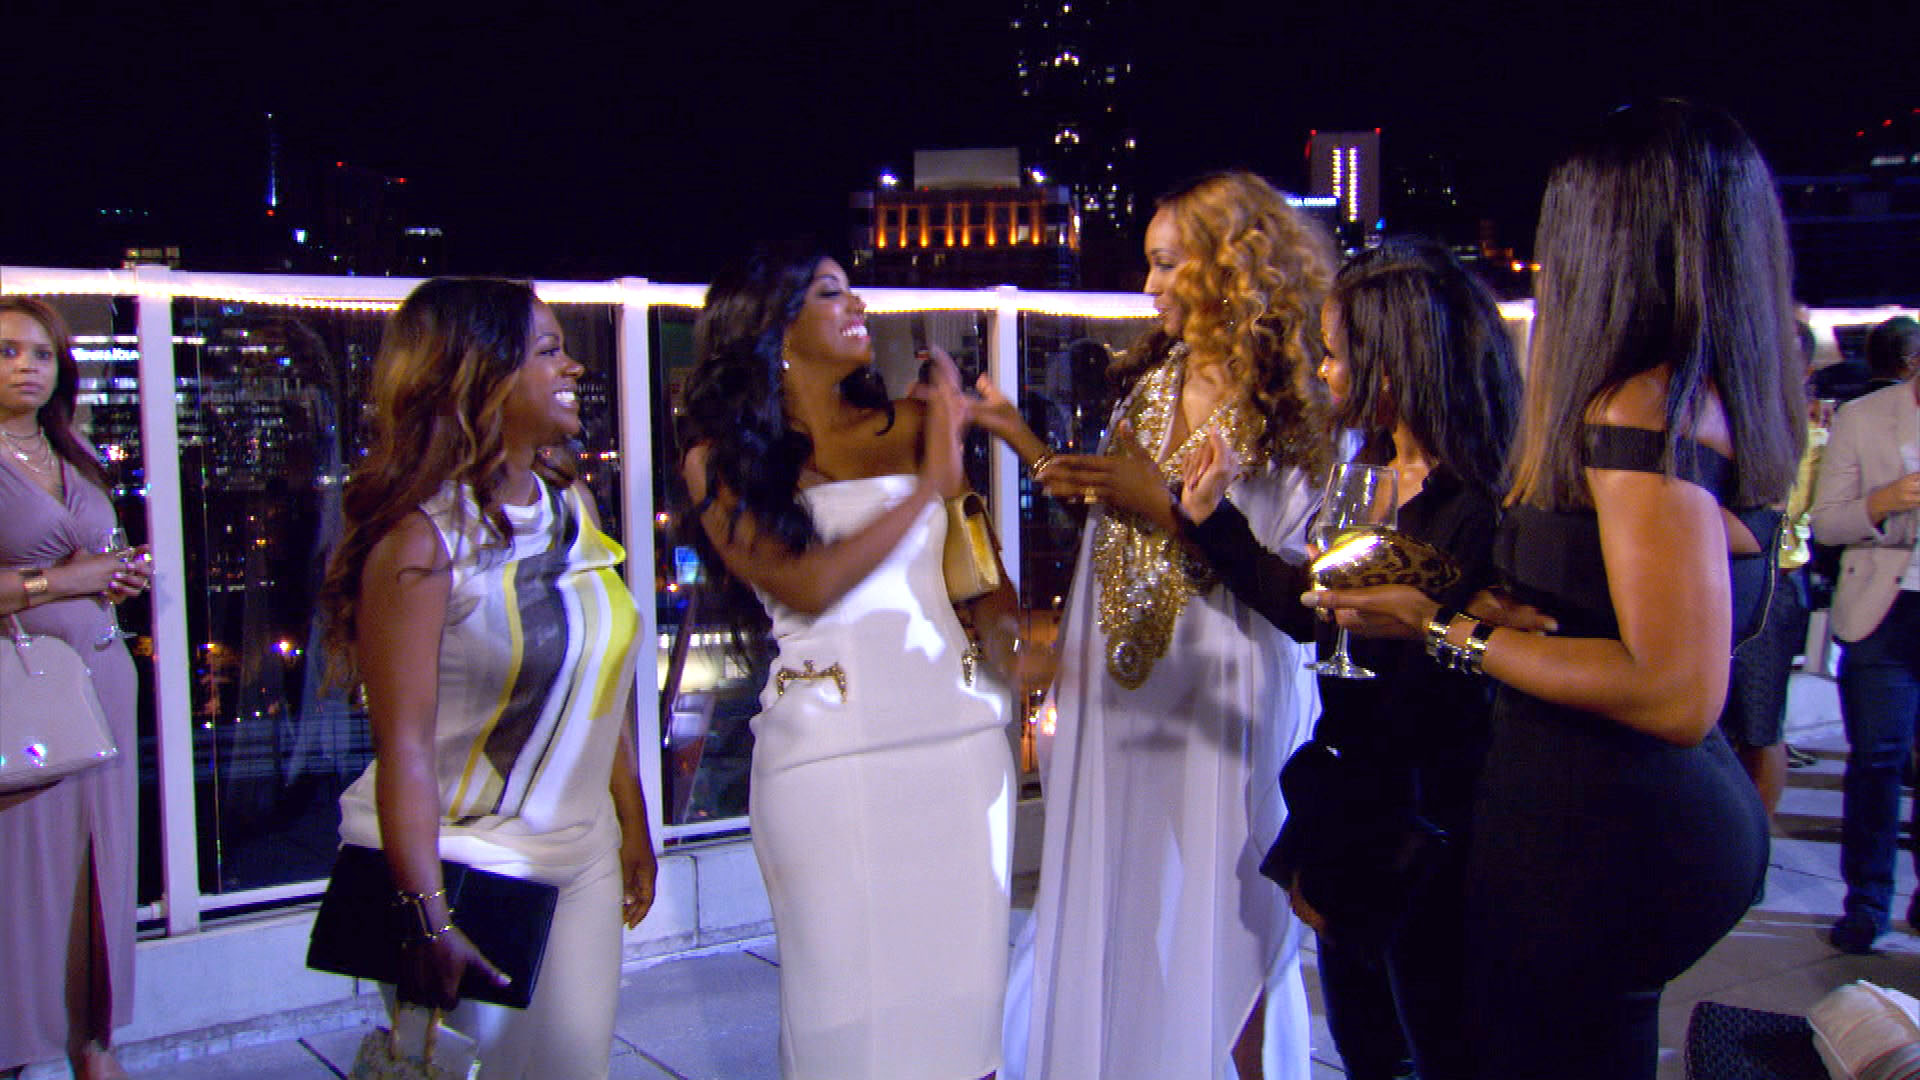 The Aftermath of Kenya and Sheree's Showdown